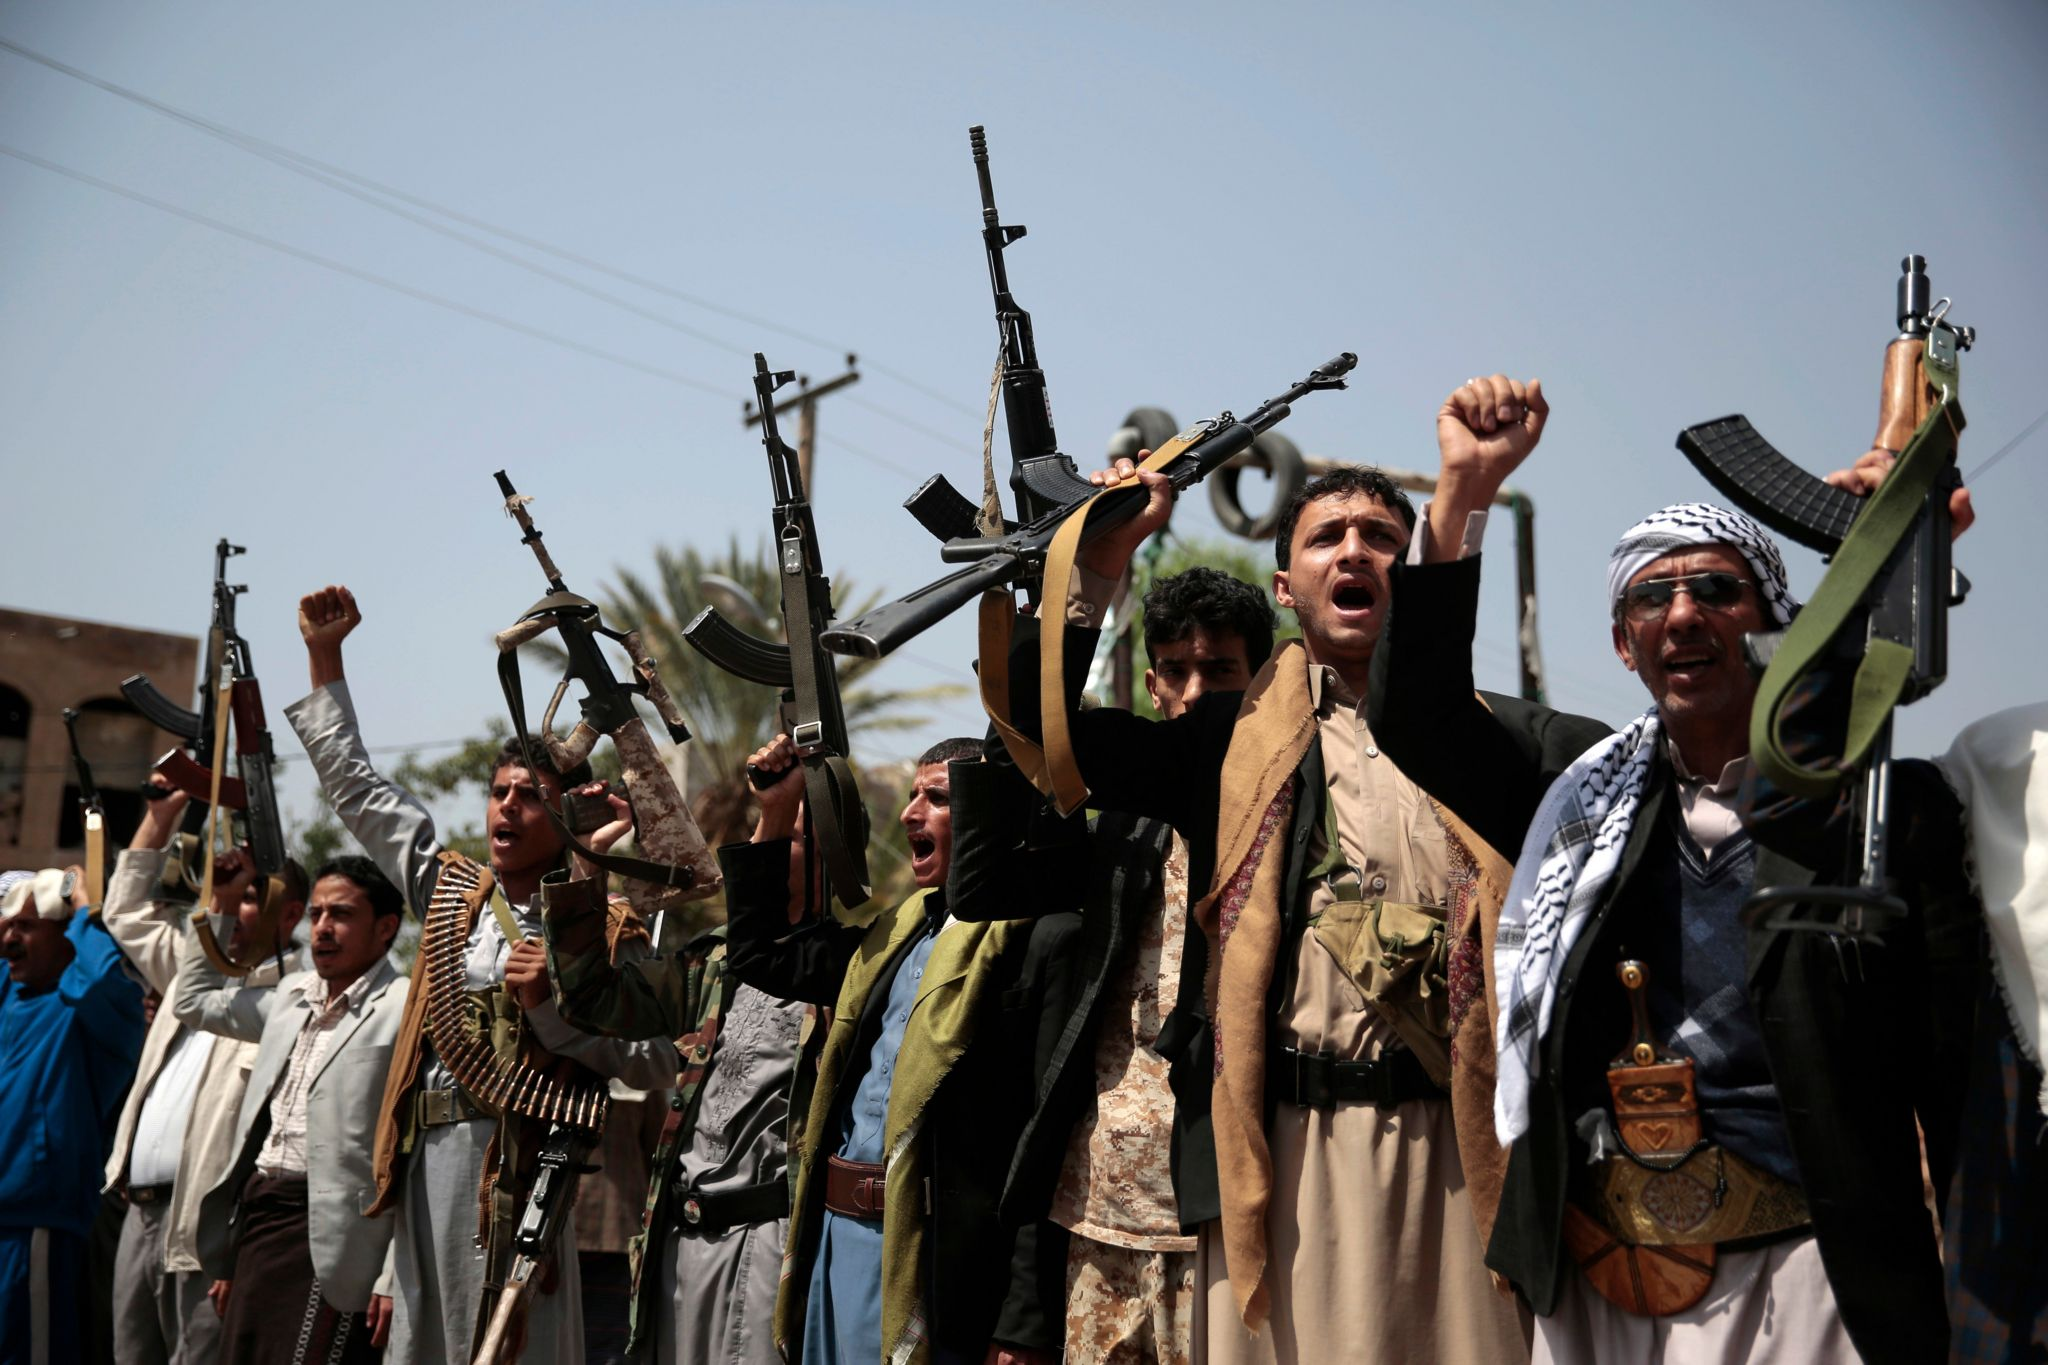 Local Houthi rebels protested the airstrikes